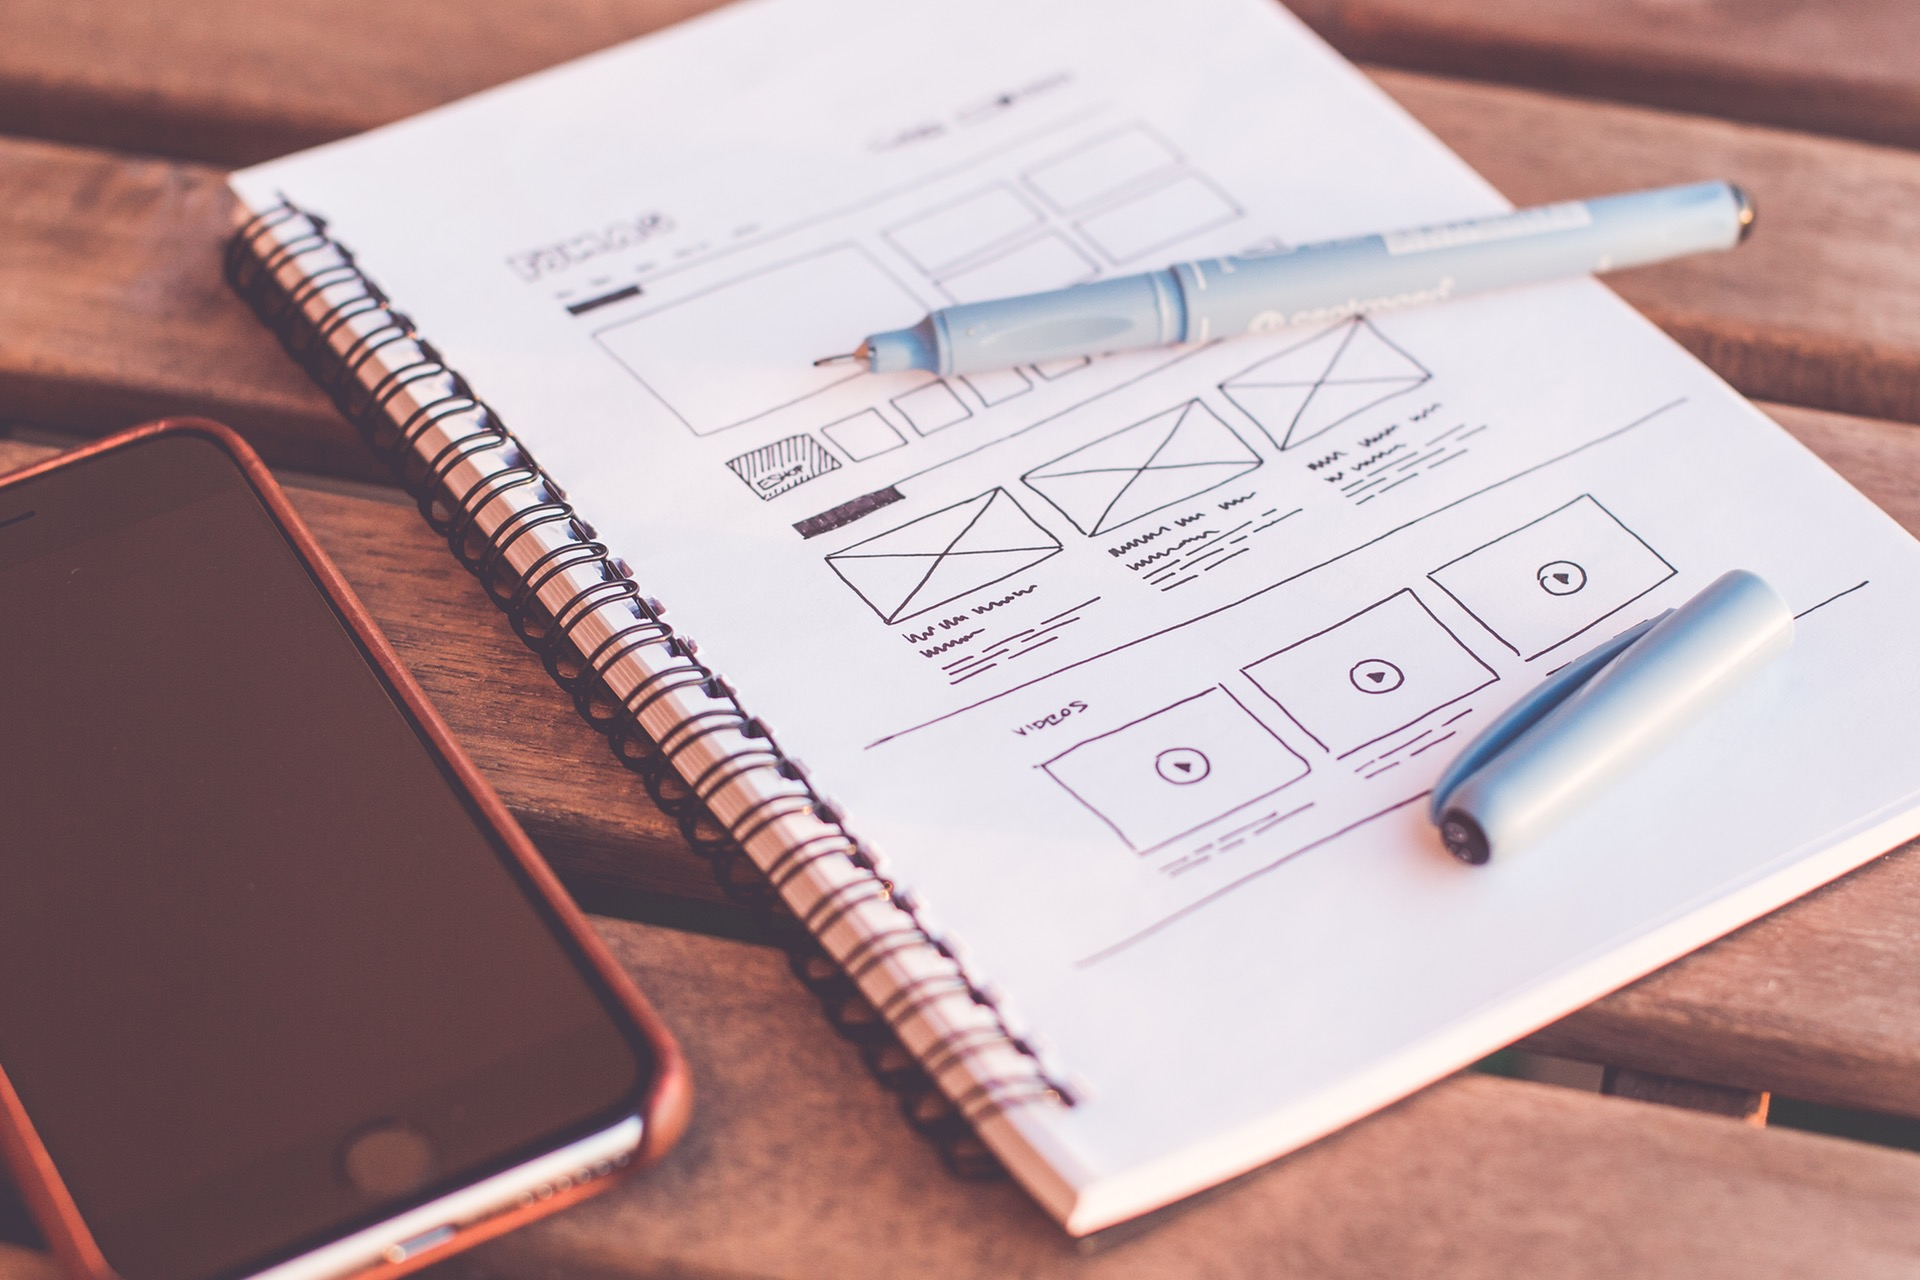 Notebook with design sketches beside an iPhone on a wooden table